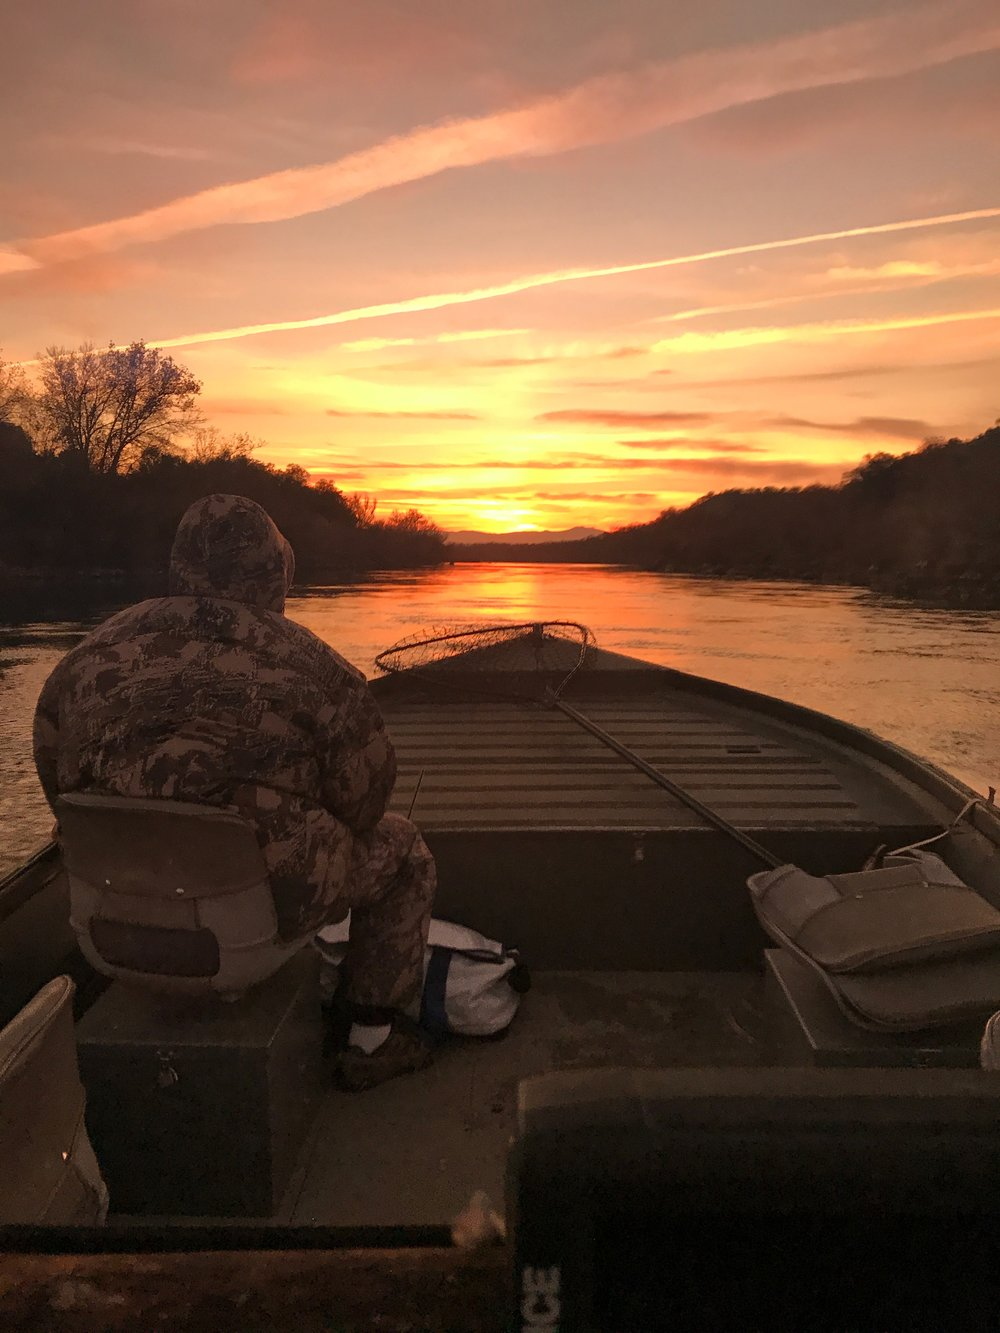 Heading into the sunset at the end of one of our countless adventures on the Sacramento River.